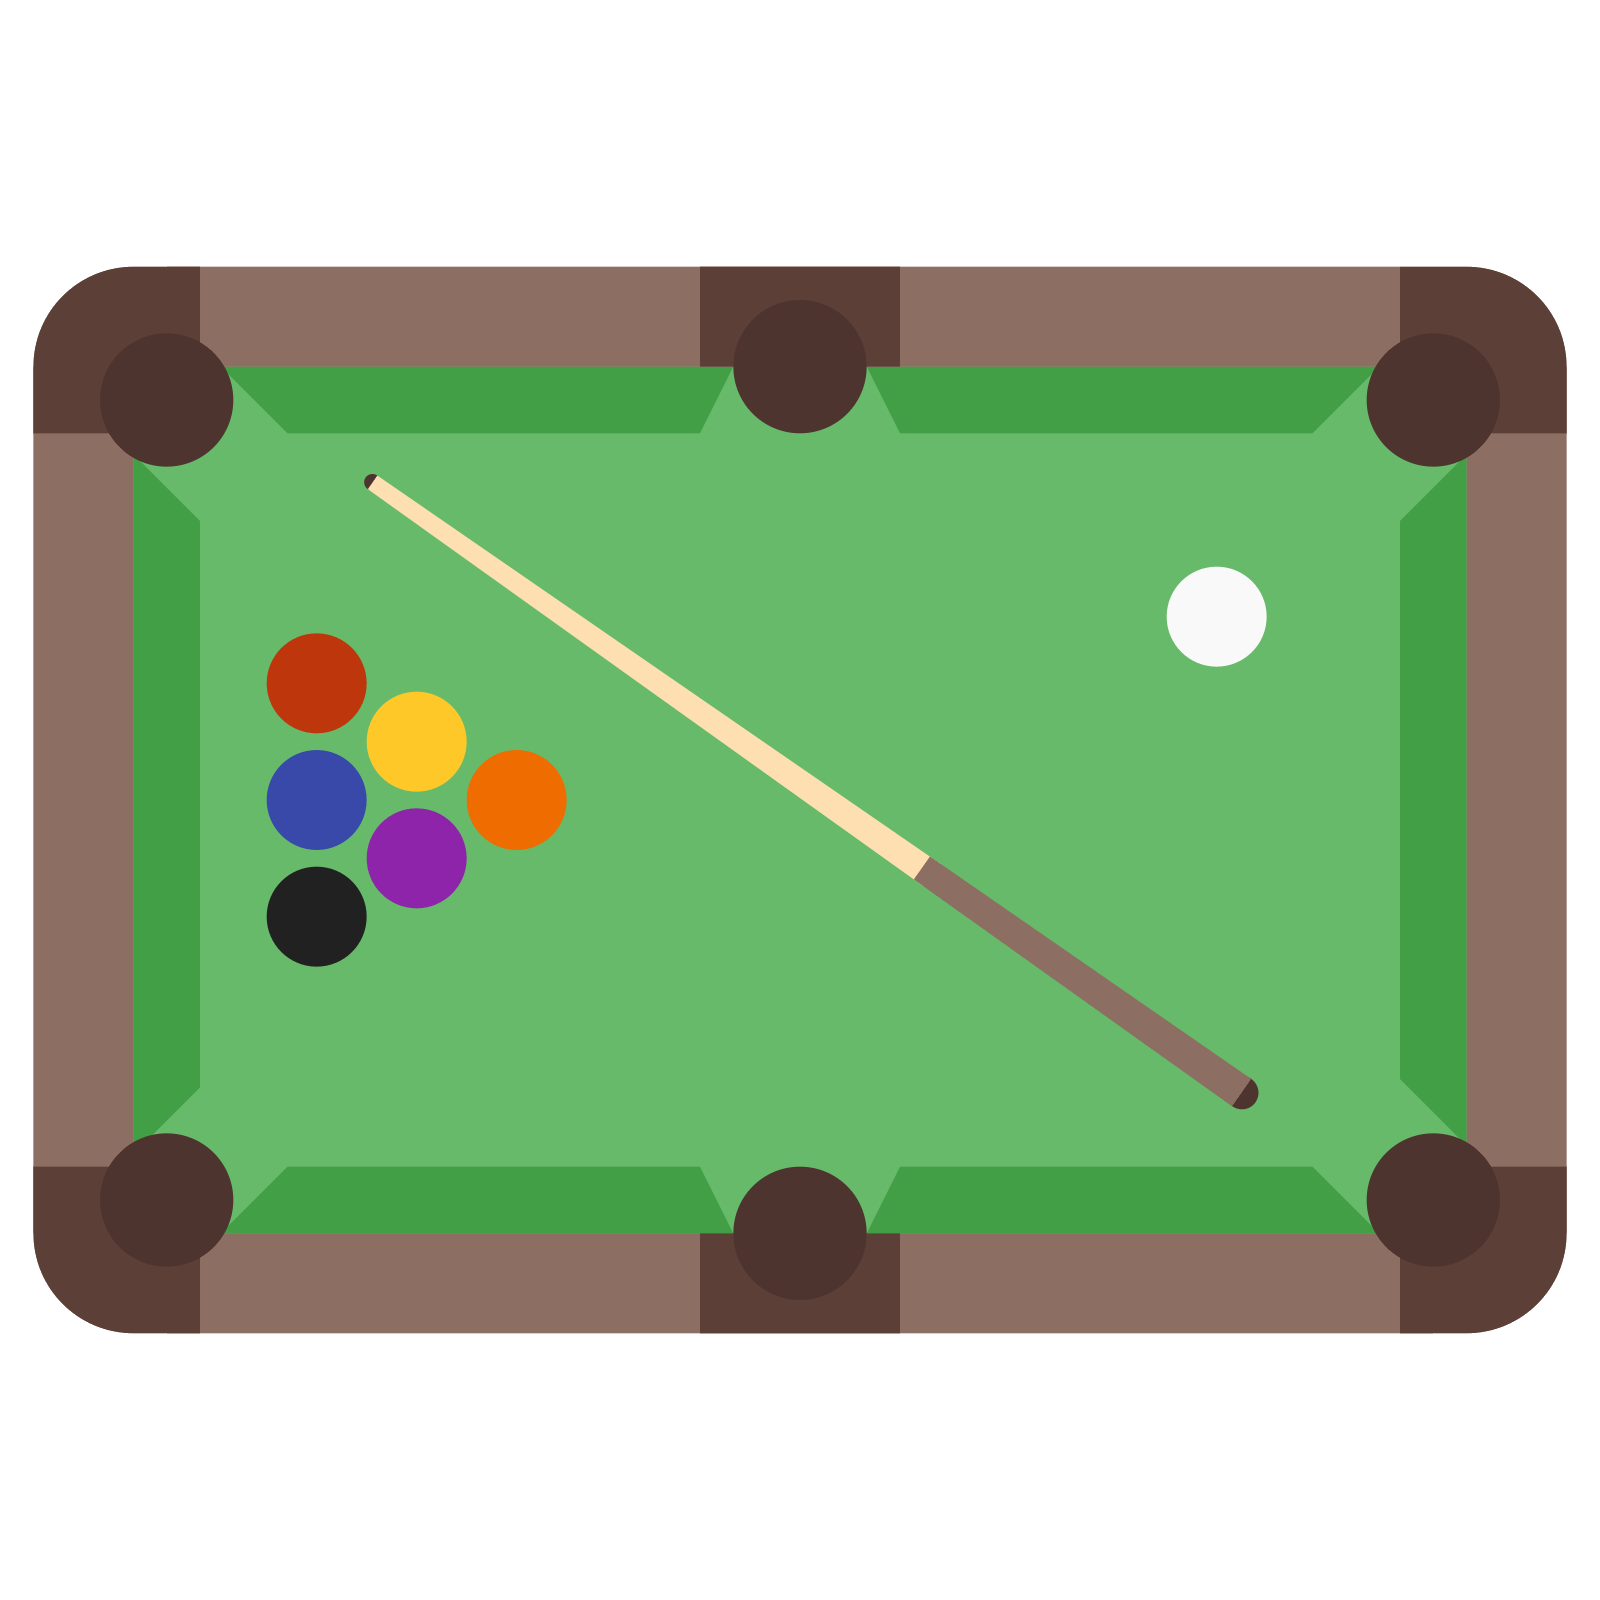 Billiards clipart pool game. Table movers logo